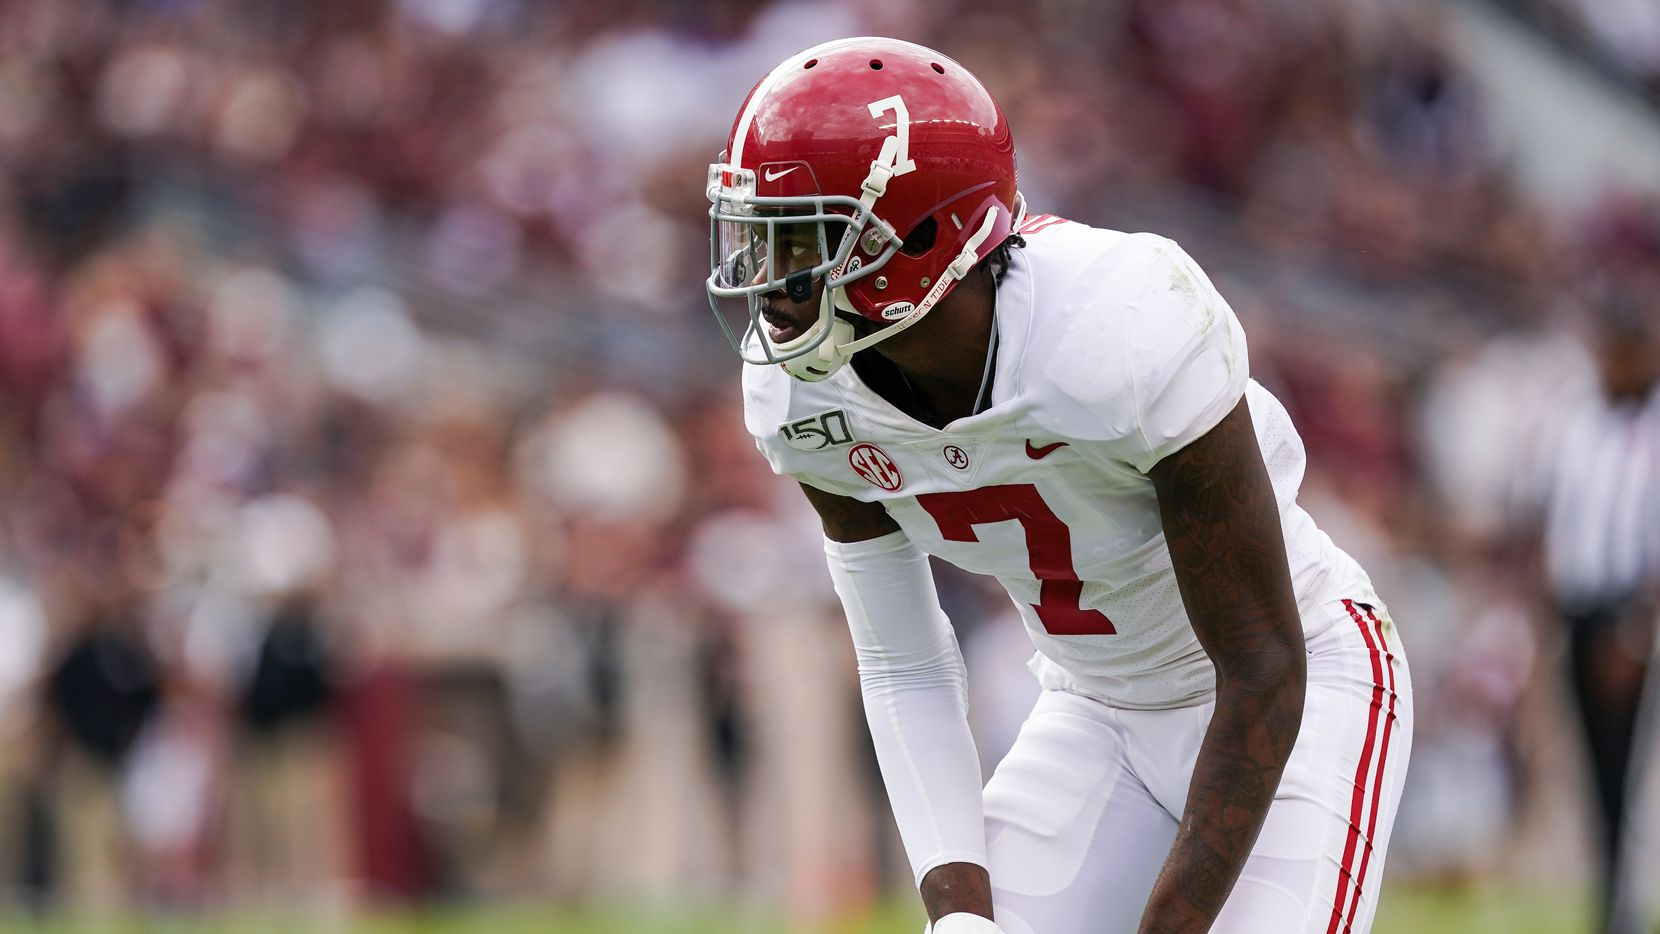 COLLEGE STATION, TX - OCTOBER 12: Alabama Crimson Tide defensive back Trevon Diggs (7) lines up during the college football game between the Alabama Crimson Tide and Texas A&M Aggies on October 12, 2019 at Kyle Field in College Station, Texas.